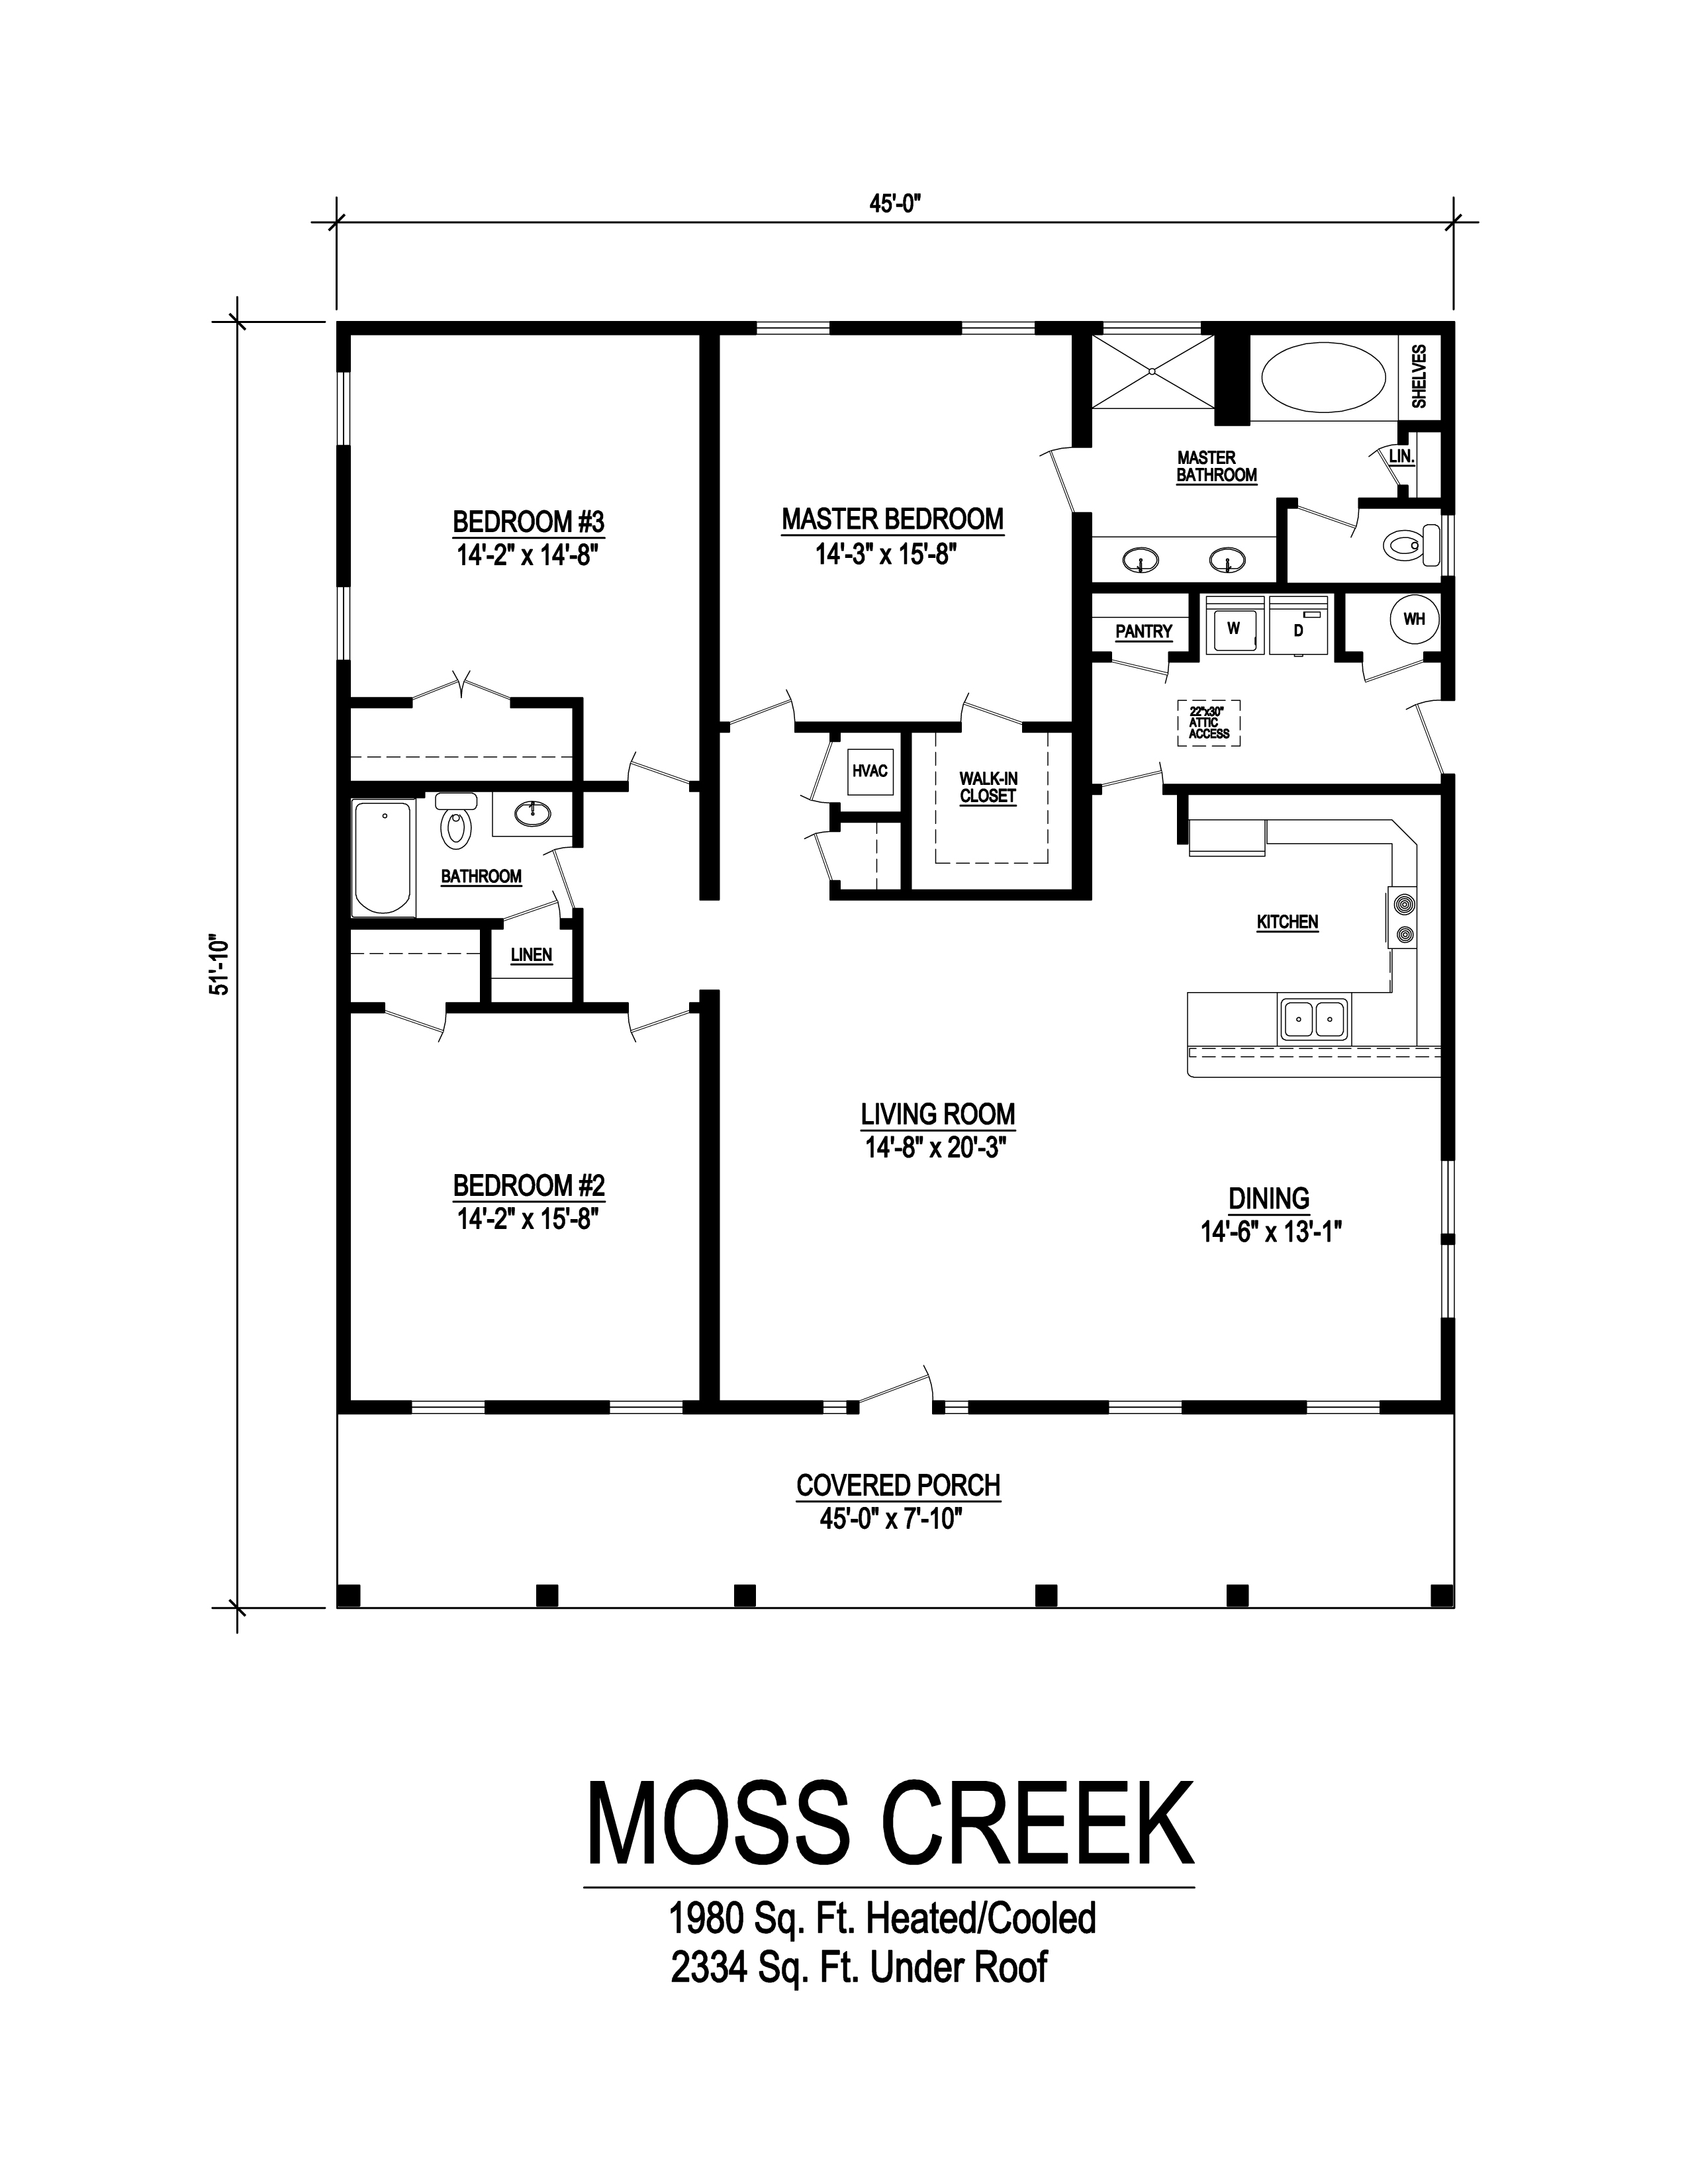 moss creek modular home floorplan